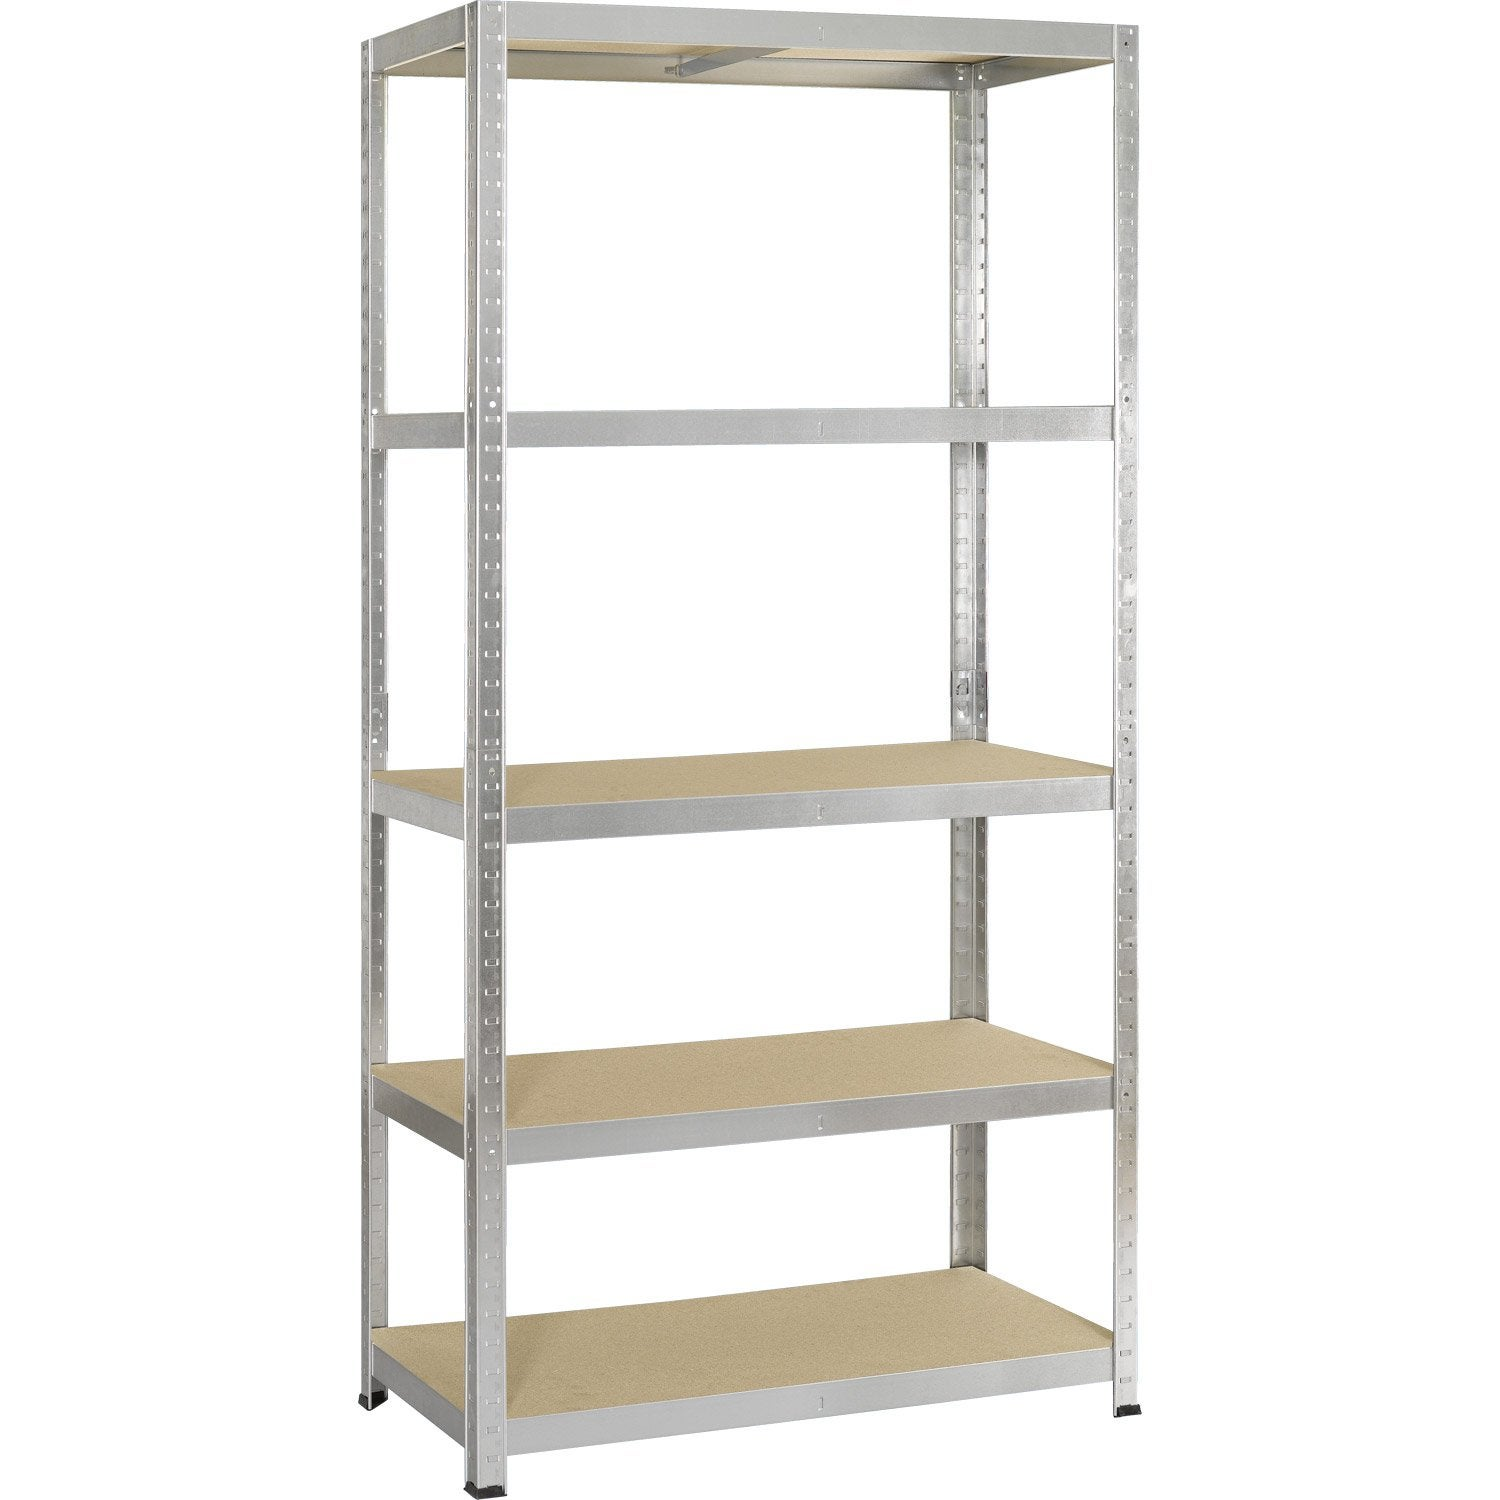 Etag re acier avasco strong 5 tablettes galva x x cm lero - Etagere leroy merlin ...